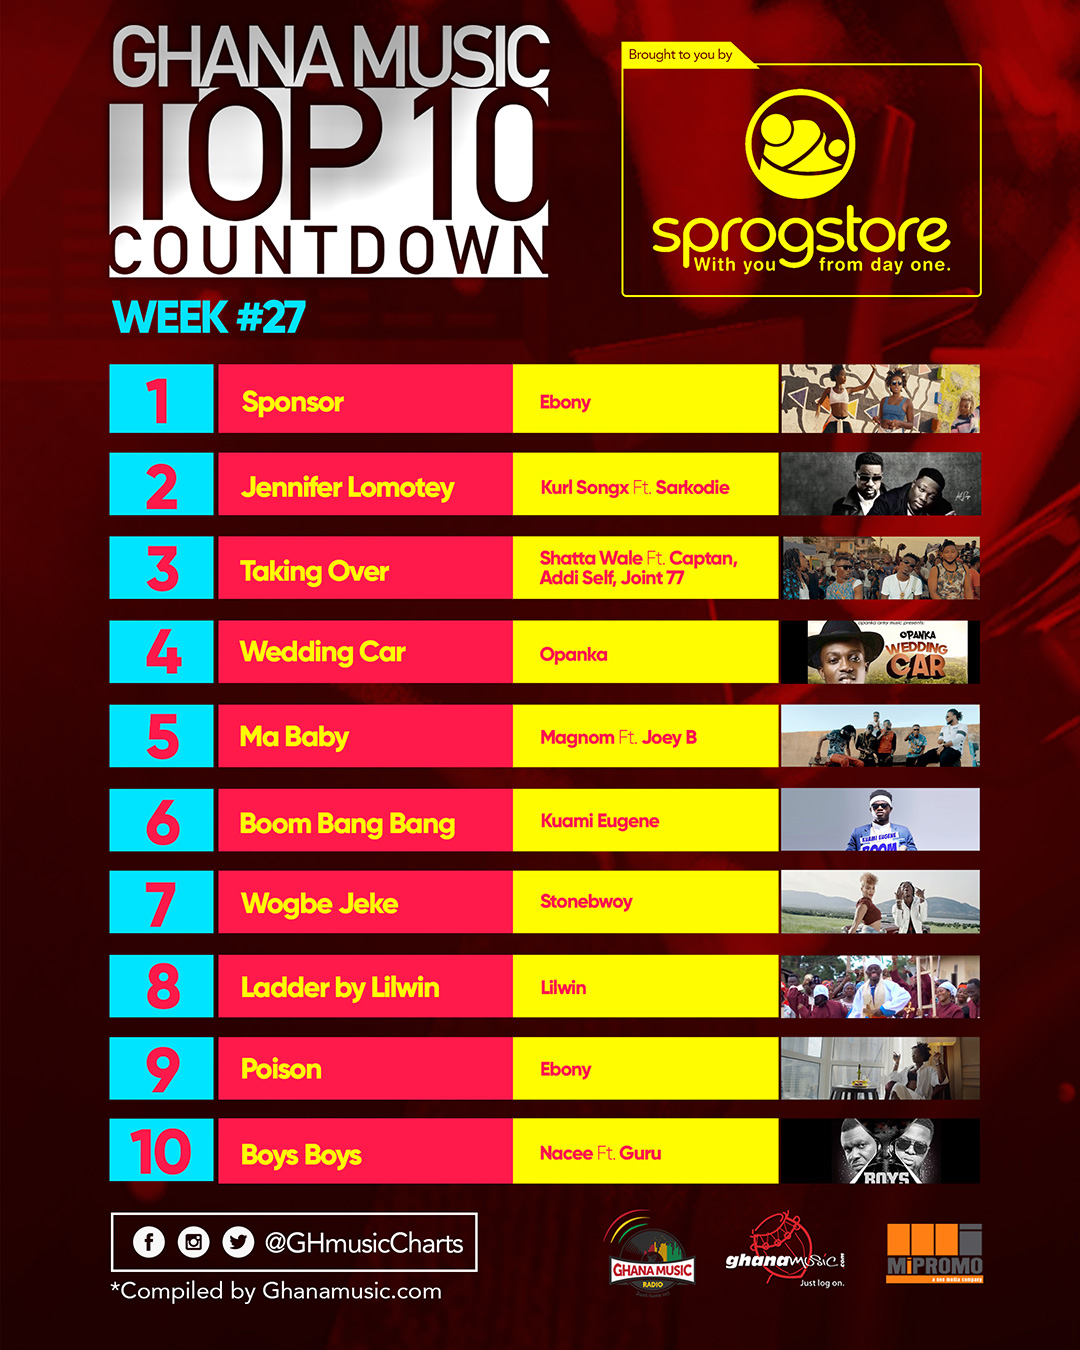 Week #27: Week ending Saturday, July 8th, 2017. Ghana Music Top 10 Countdown.